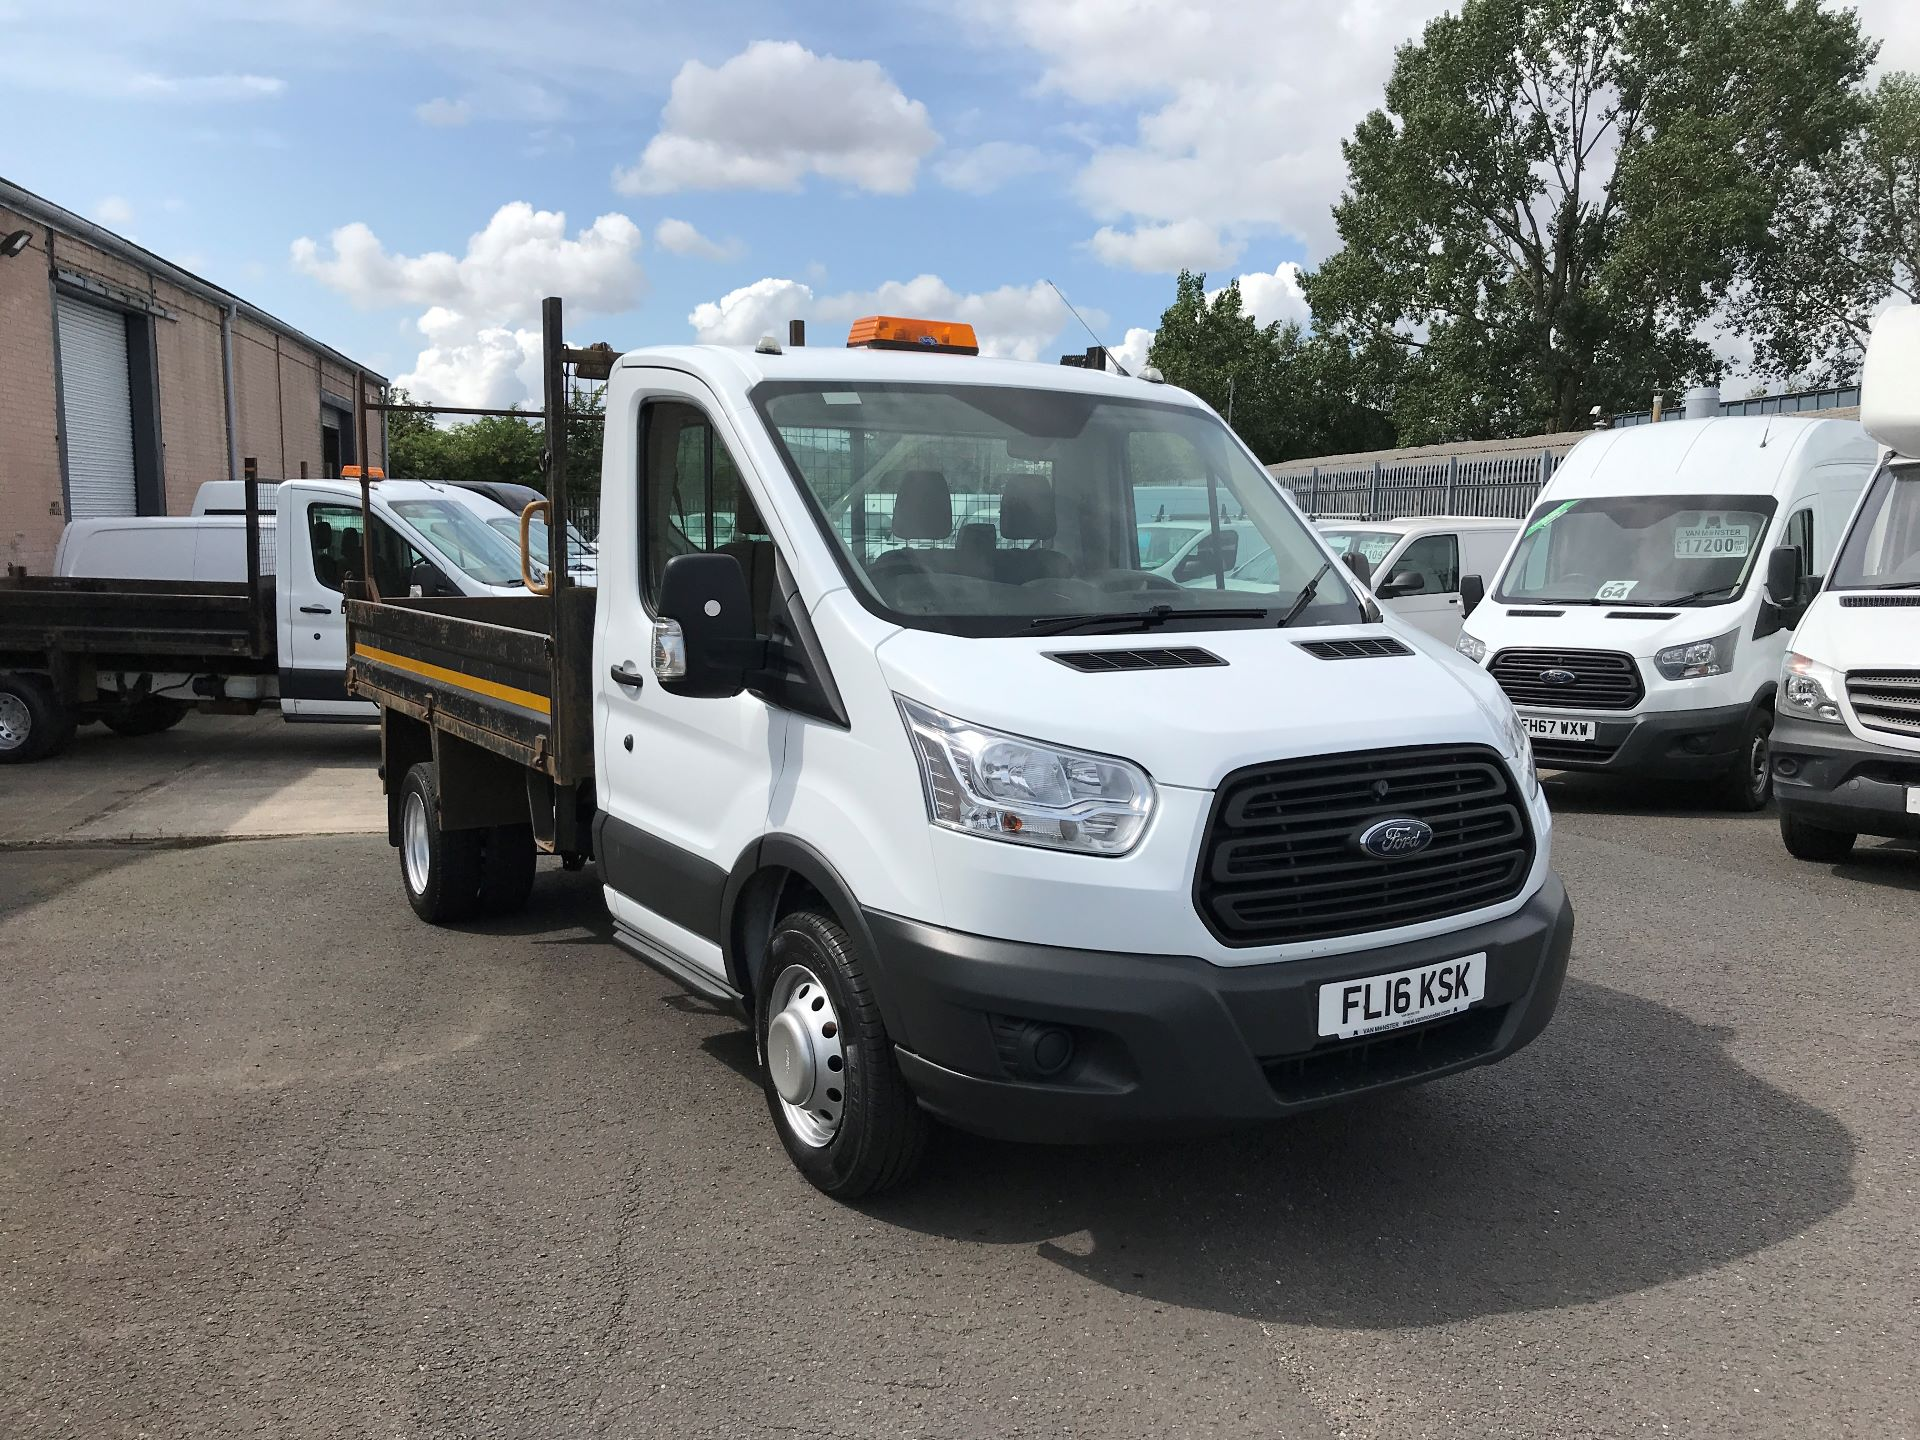 2016 Ford Transit  350 L2 SINGLE CAB TIPPER 125PS EURO 5 (FL16KSK)